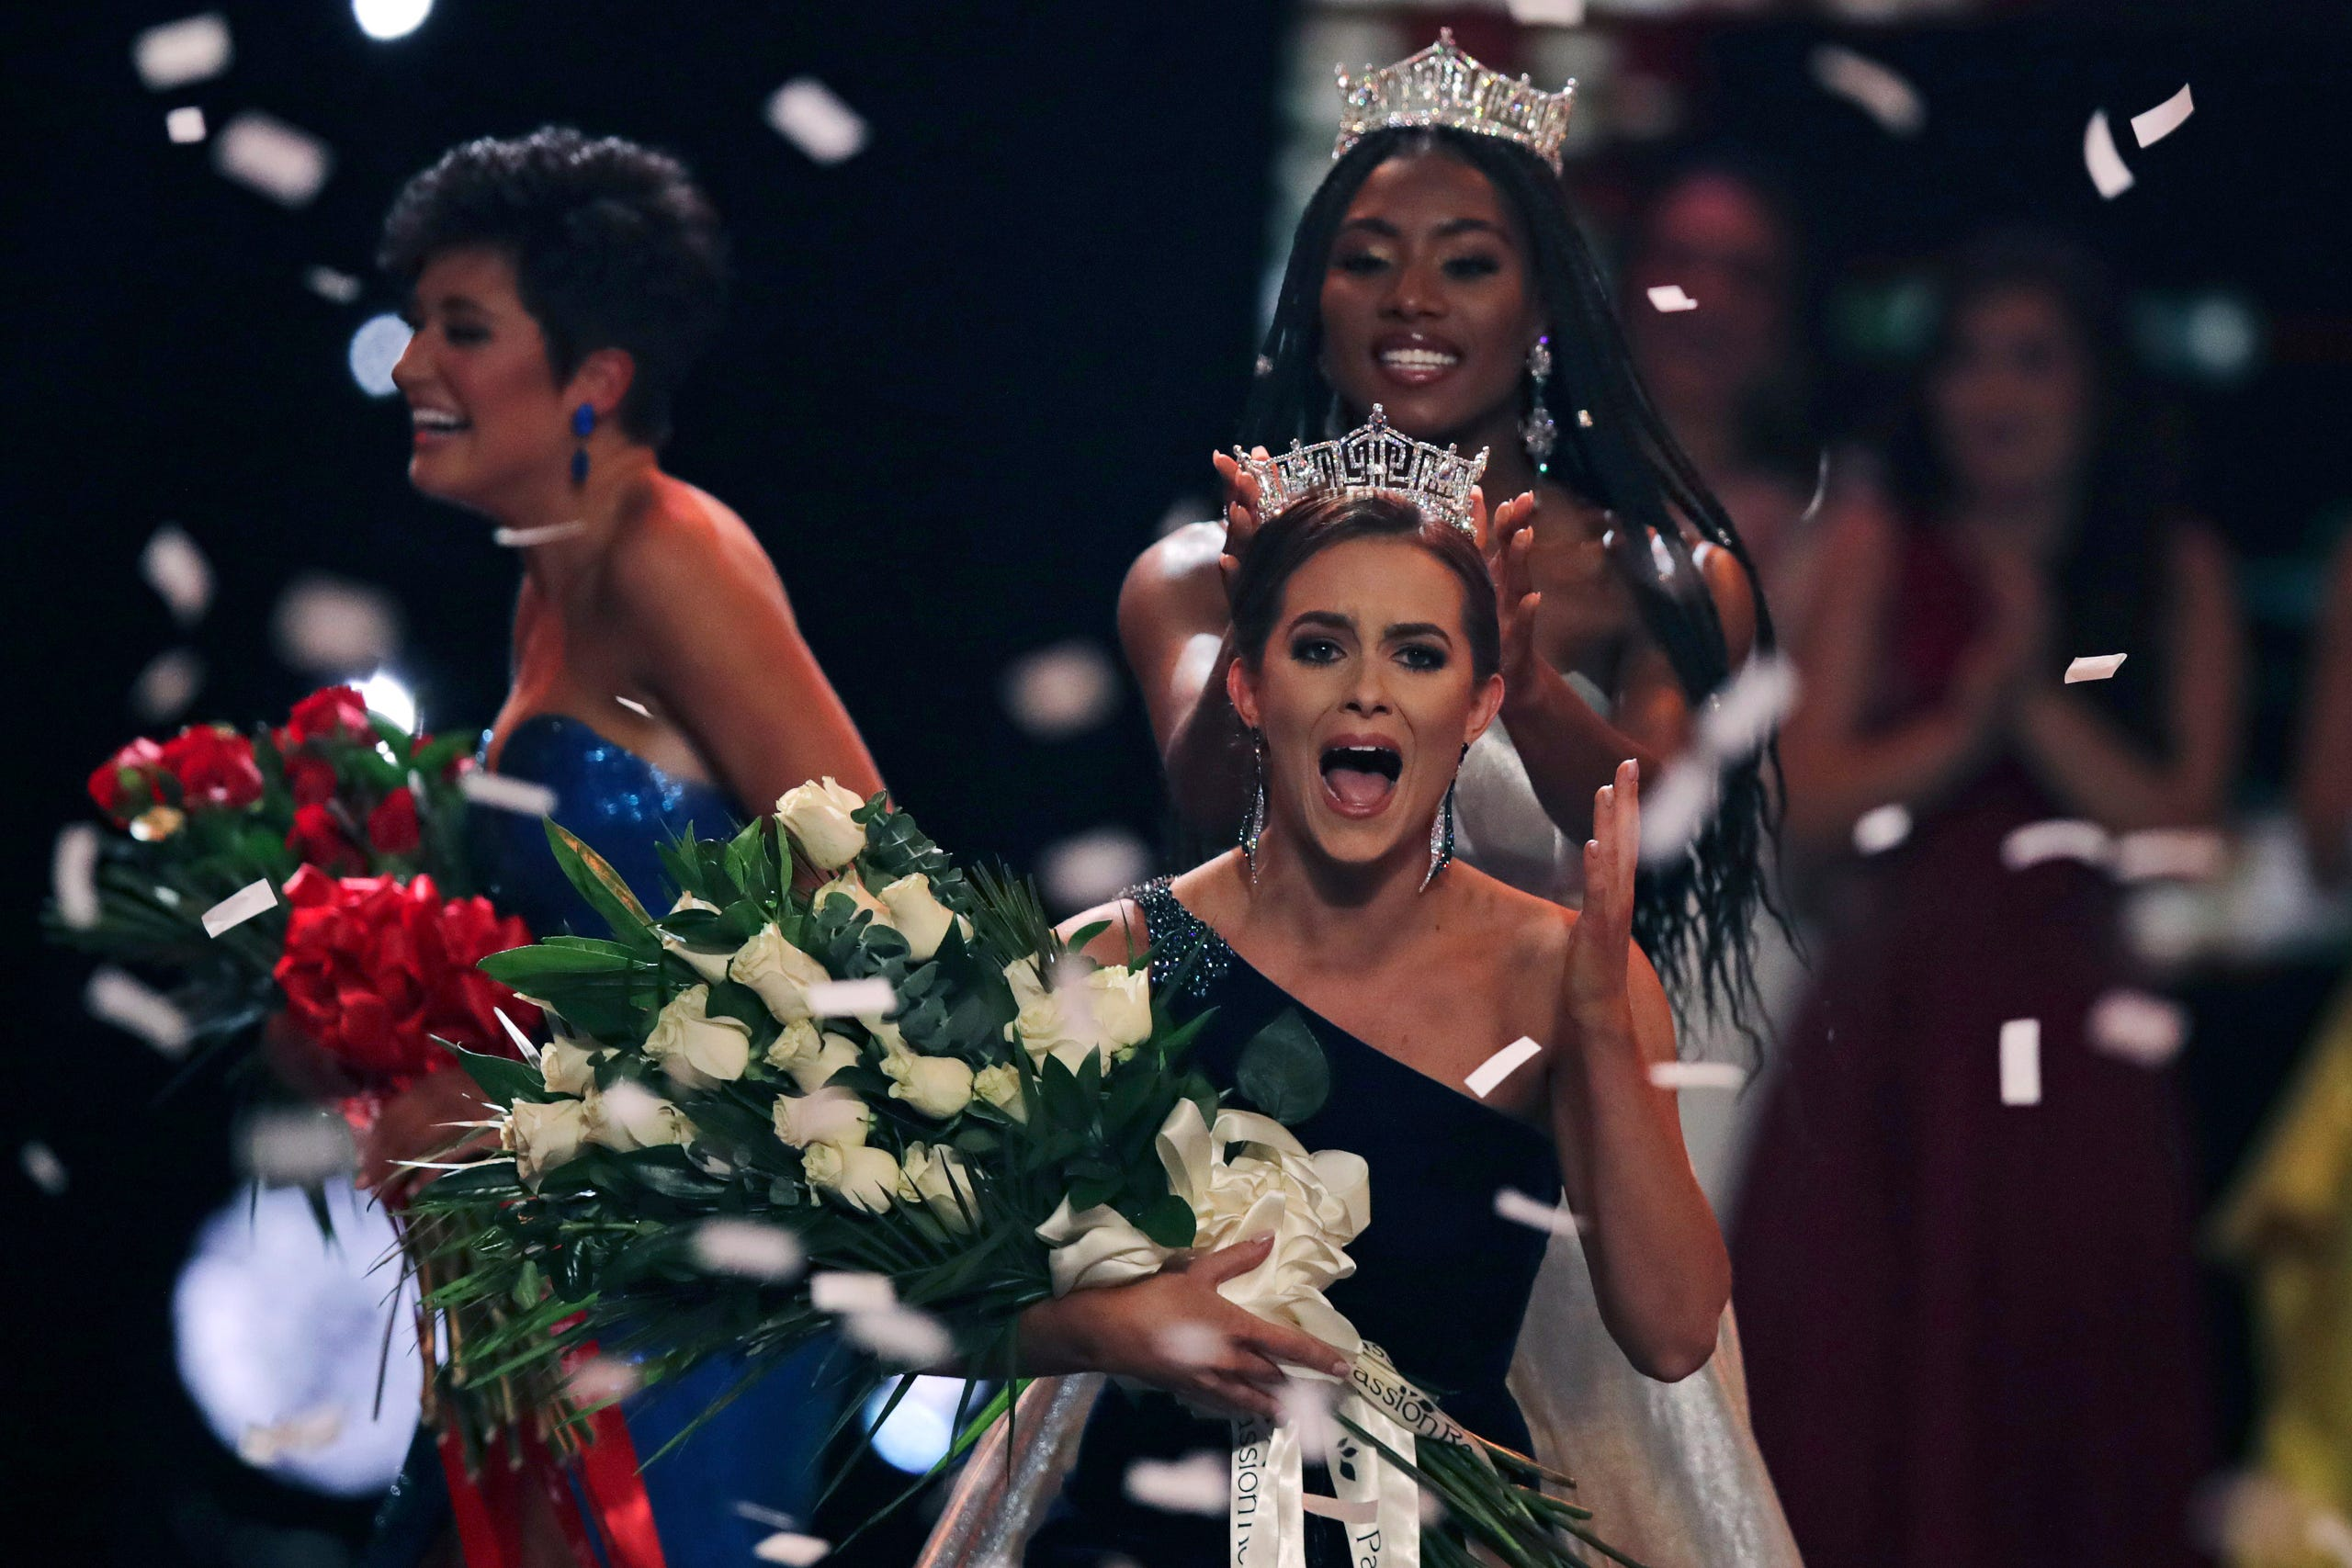 Camille Schrier, of Virginia, right, reacts after winning the Miss America competition at the Mohegan Sun casino in Uncasville, Conn., Thursday, Dec. 19, 2019. At left is runner-up Miss. Georgia Victoria Hill and at rear is Miss. America 2019 Nia Franklin. (AP Photo/Charles Krupa) ORG XMIT: CTCK106